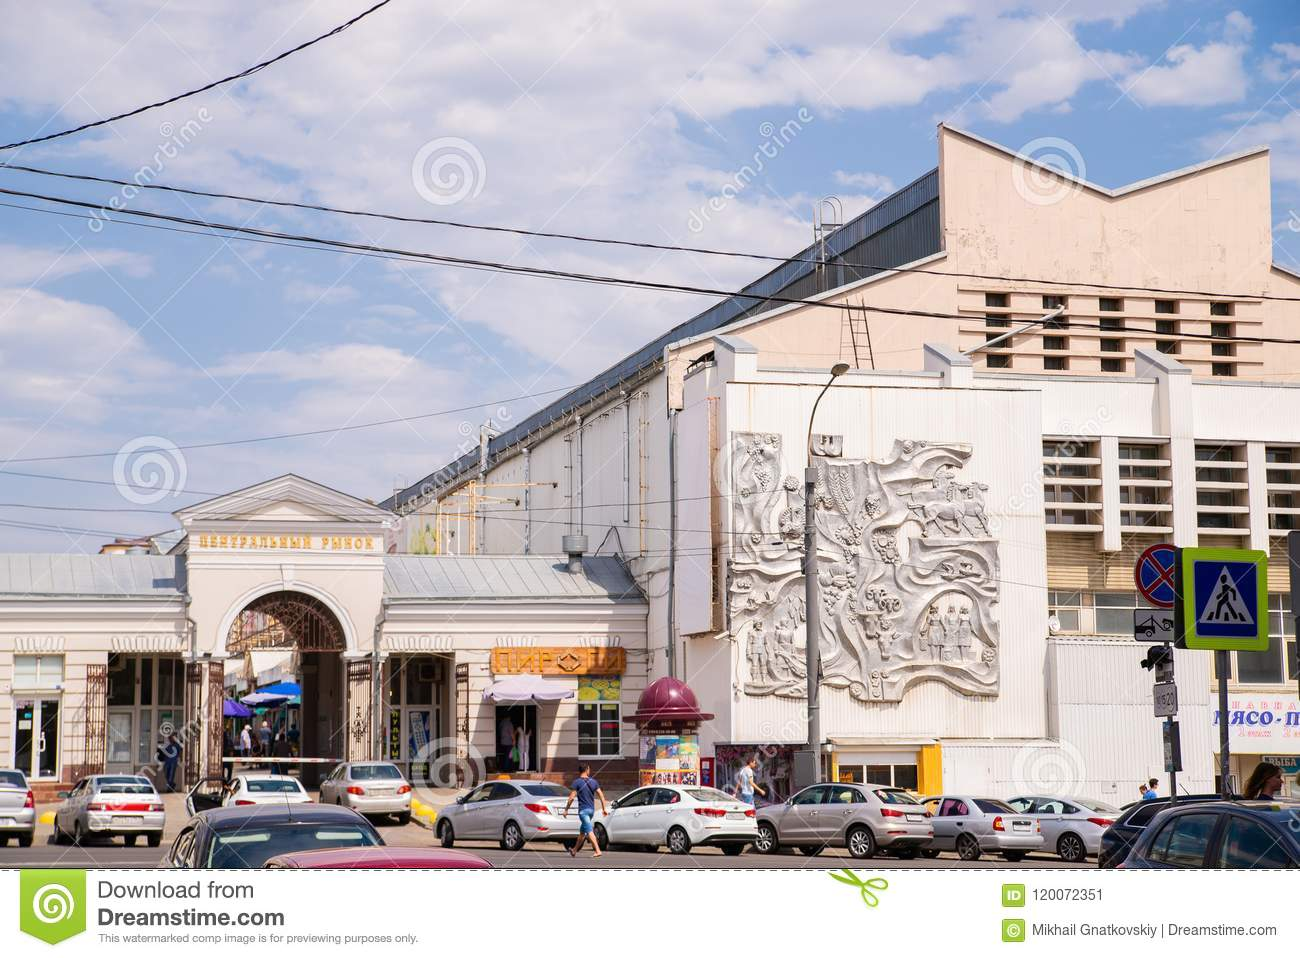 The situation in the real estate market in Rostov